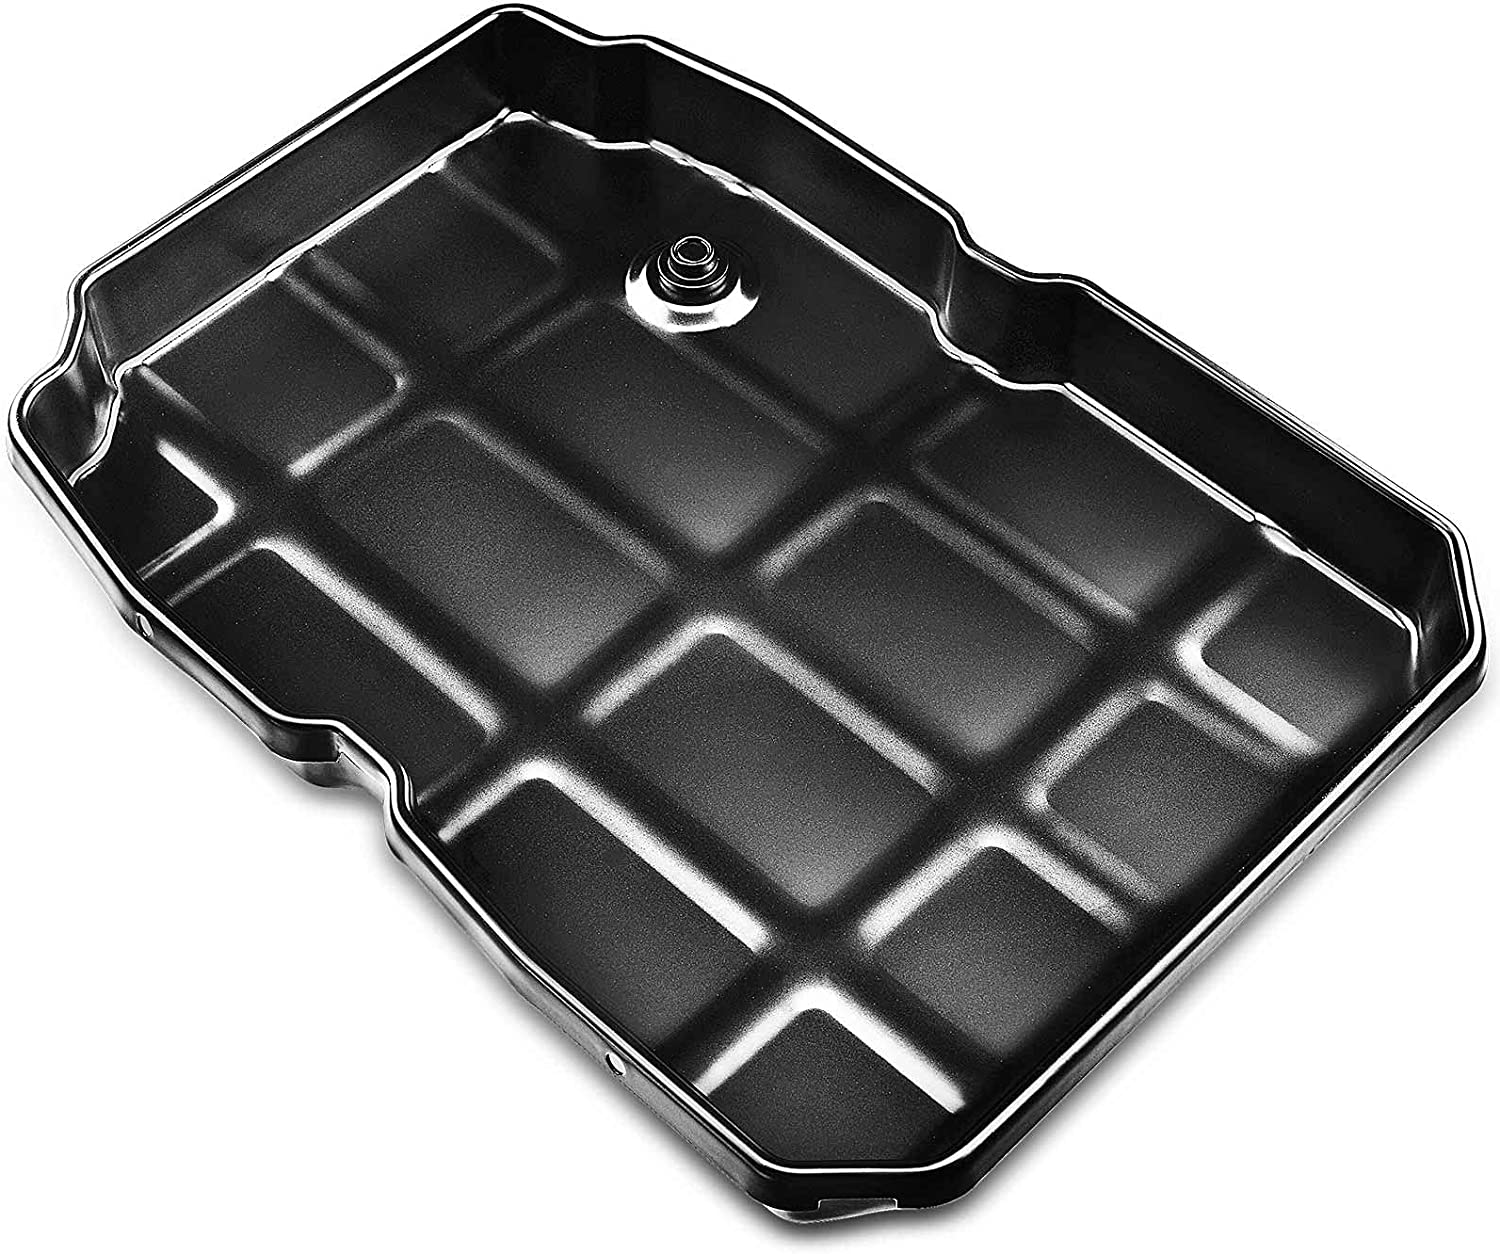 A-Premium Transmission Oil Pan Replacement 2005-2014 300 Dod Cheap super special Cheap mail order shopping price for